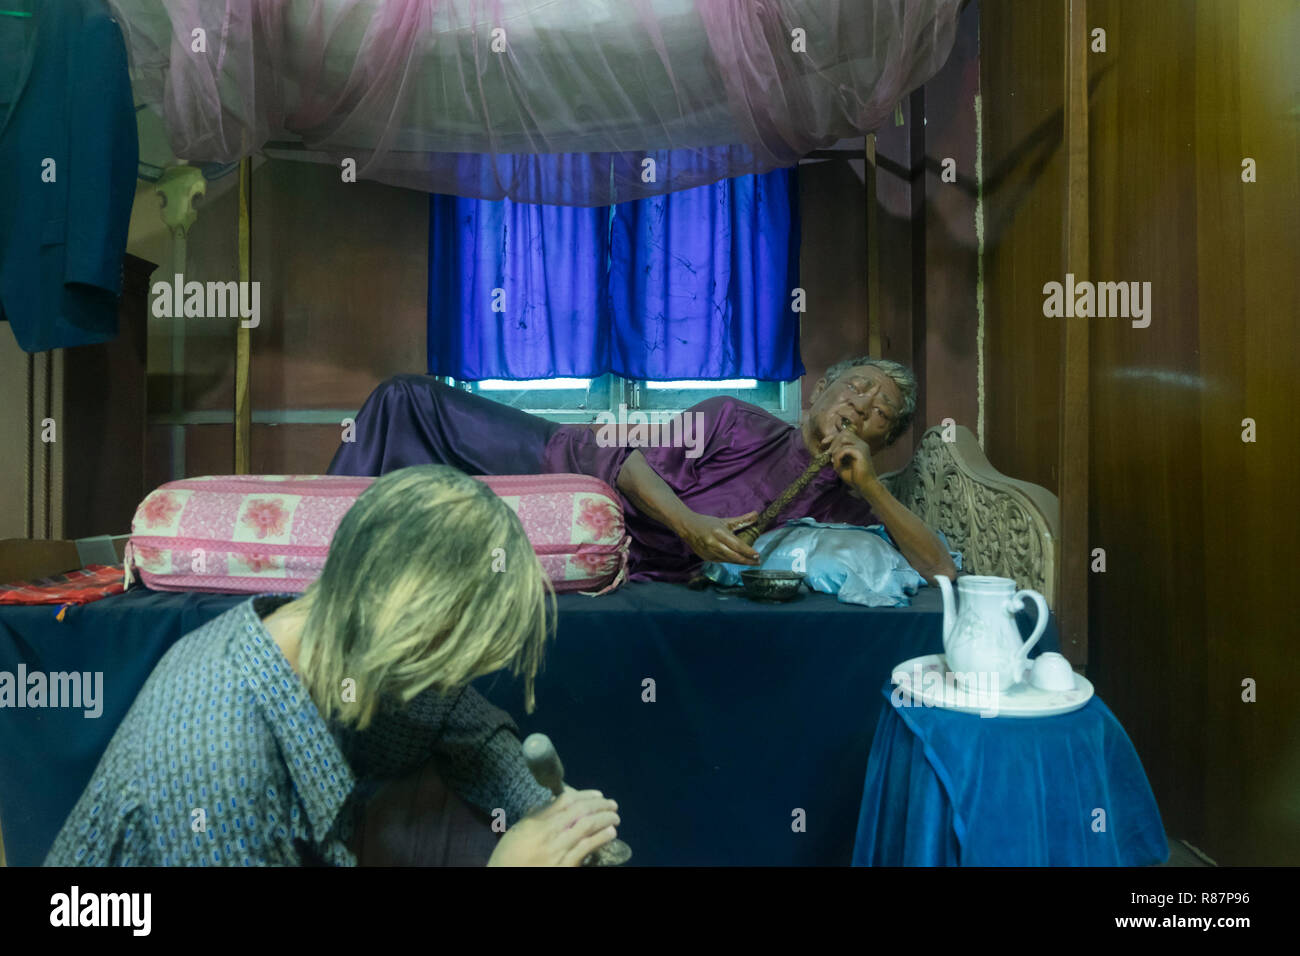 Exhibit showing the smoking of opium at the Drug Elimination Museum in Yangon, Myanmar. Stock Photo